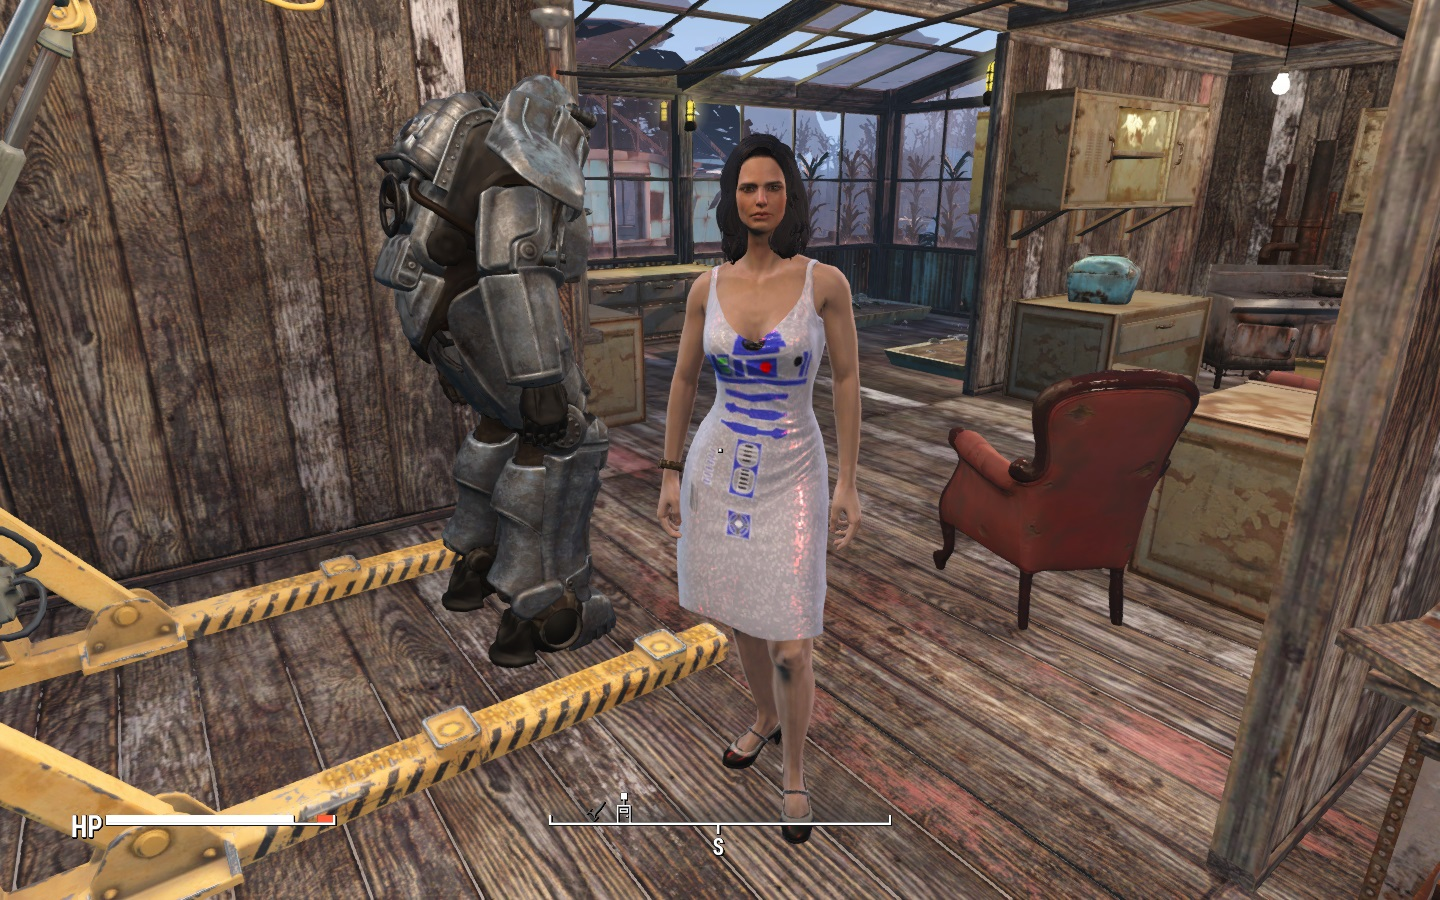 Fallout 4 Consol Mods Sharemultifiles This will auto generate the proper avif data, in part to allow most pieces to overlap in build mode, it reads the object bounds finds the total difference between bounds and sets them to 1/4 of the total difference between axis it. sharemultifiles blog